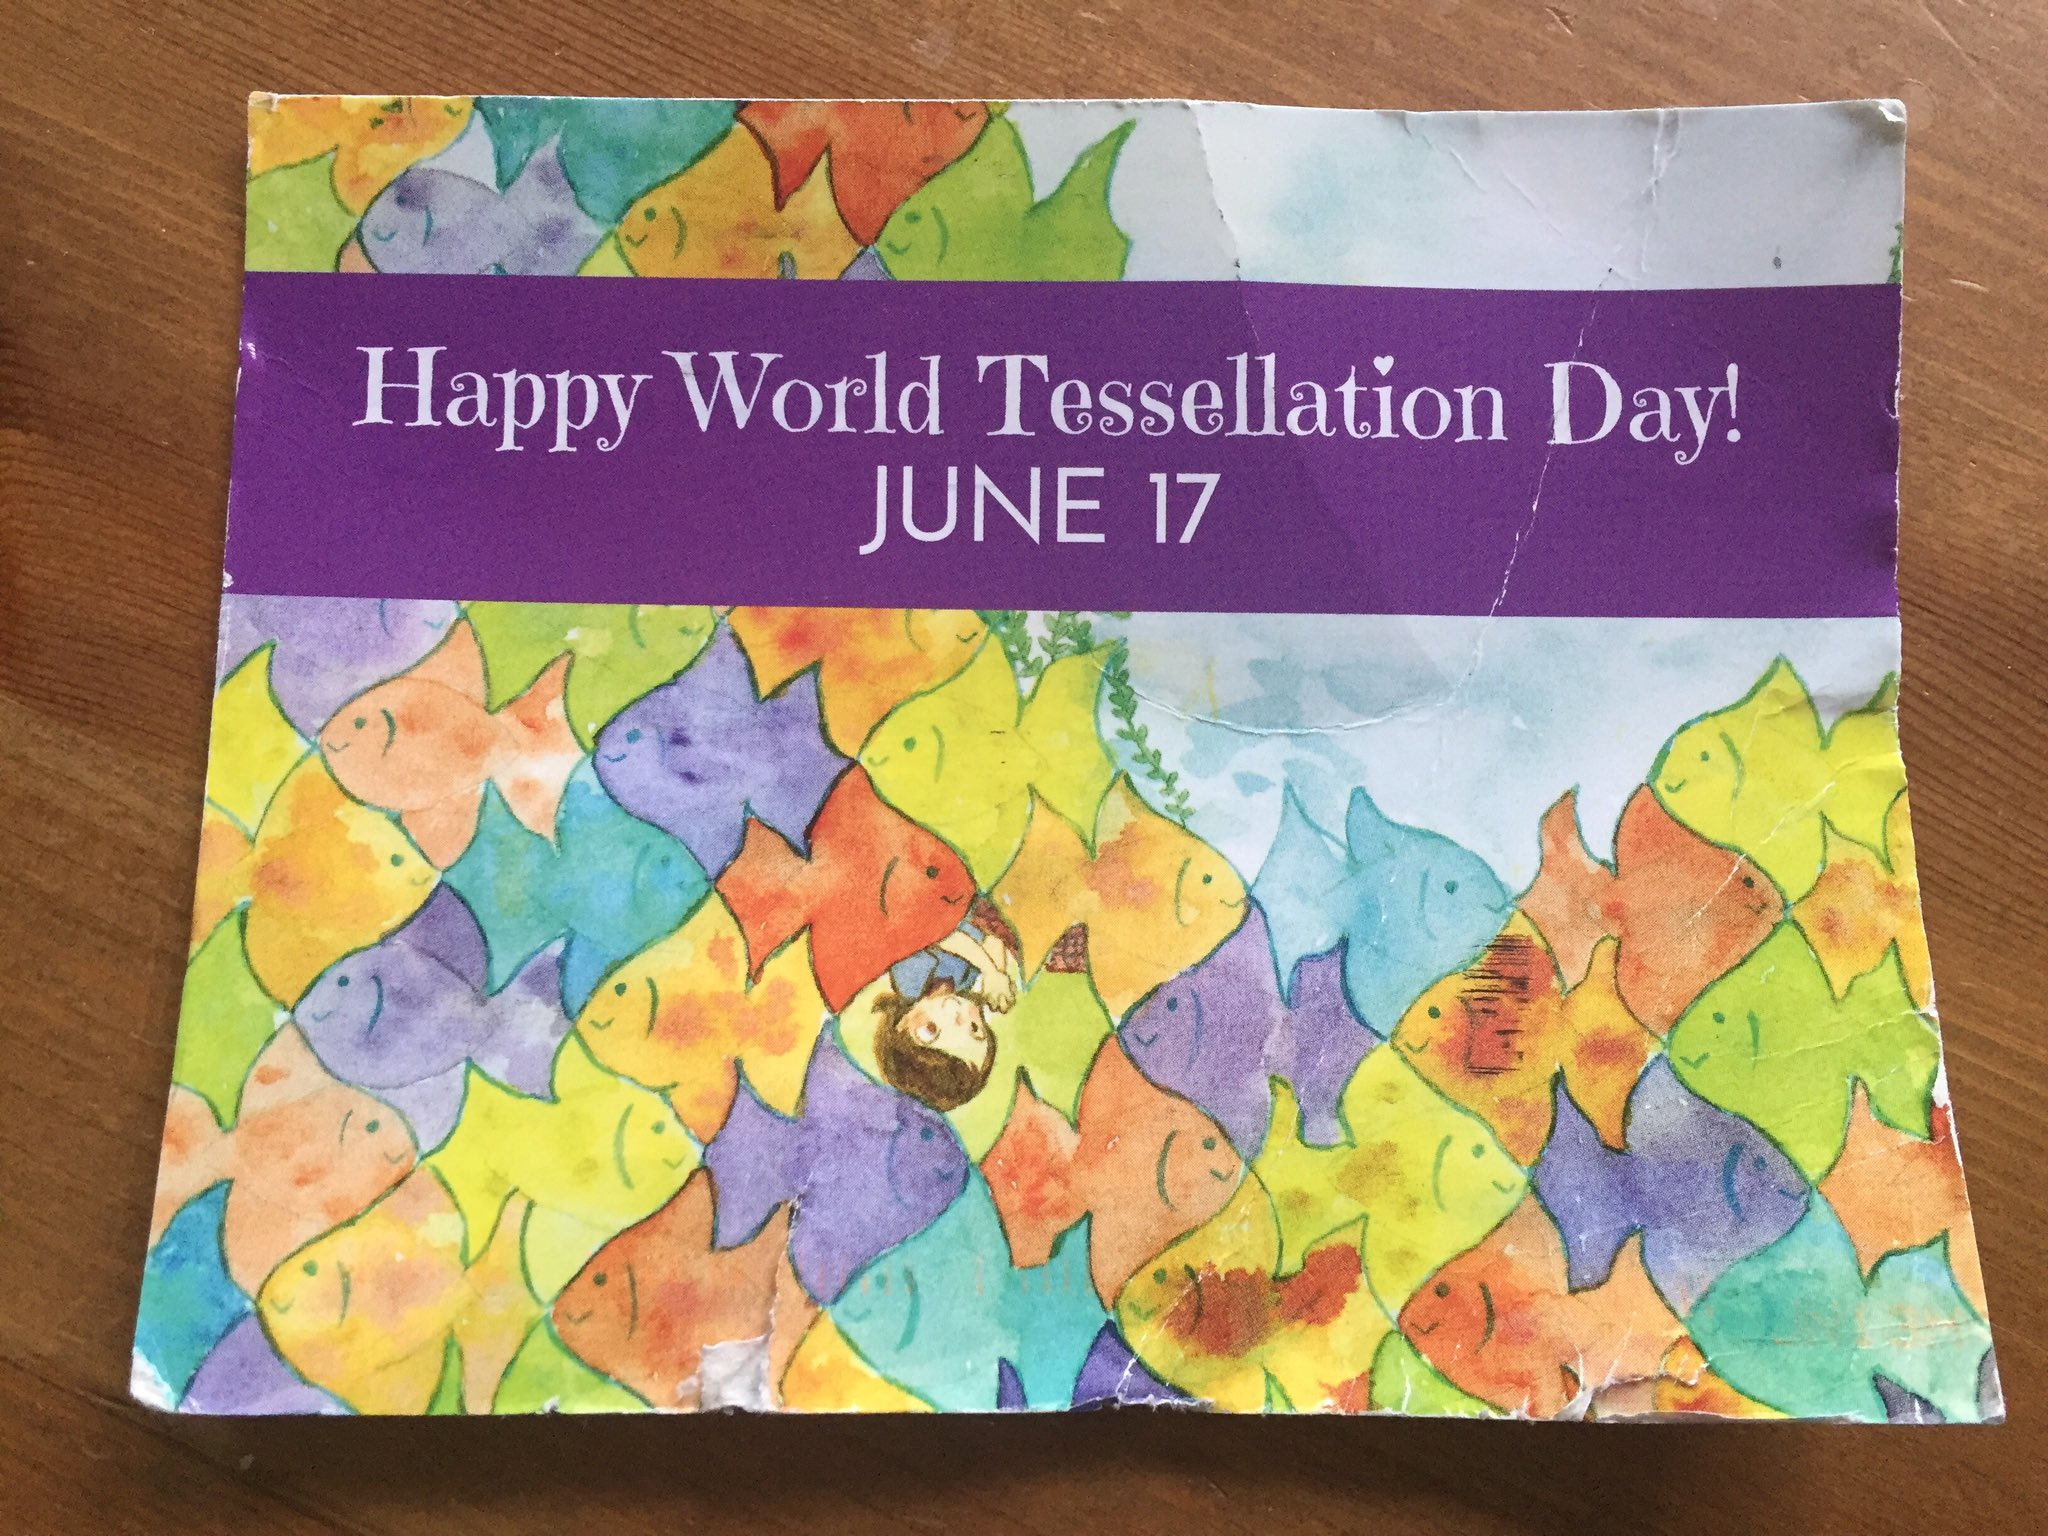 Where do you see tessellations in the world around you? Happy #WorldTessellationDay ! #bced #sd38learn https://t.co/MaRZHrHv3Q